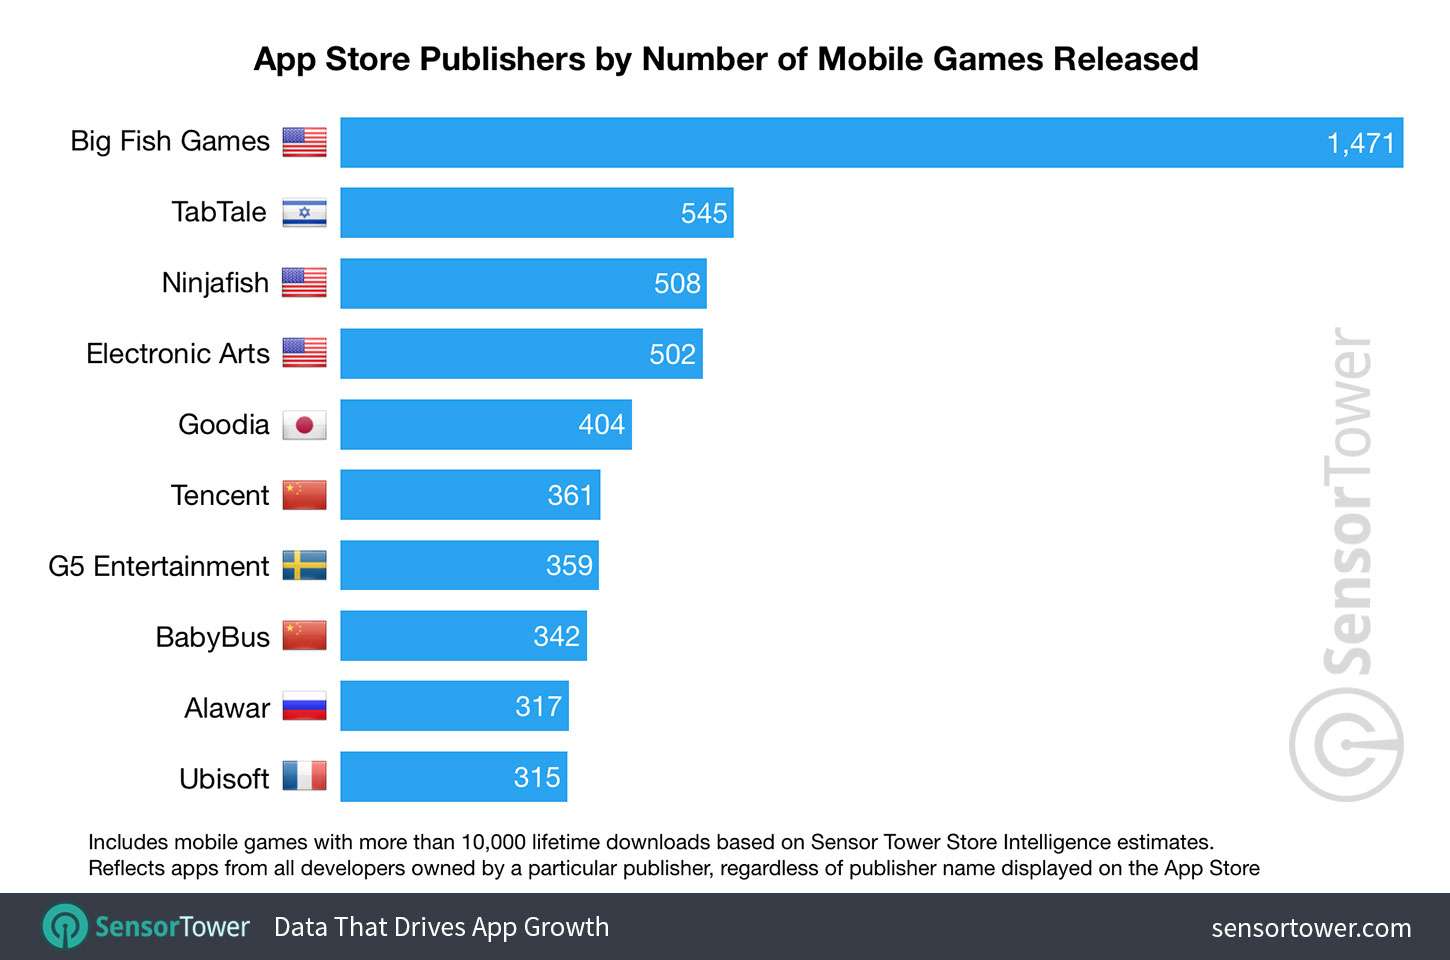 Chart showing a ranking of iOS publishers by number of mobile games released on the App Store